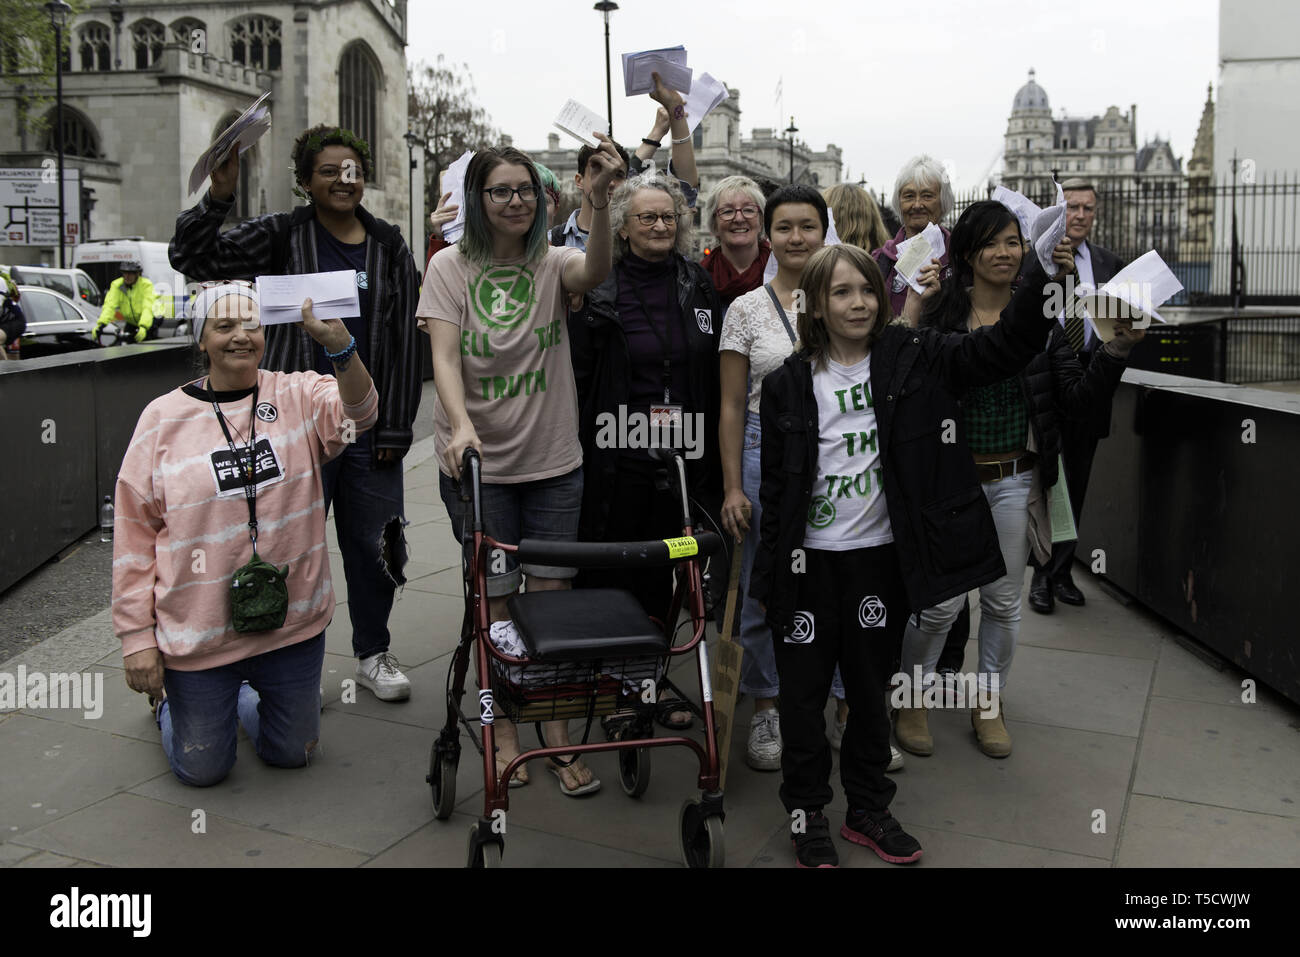 London, Greater London, UK. 23rd Apr, 2019. Baroness Jenny Jones (centre) walking to Parliament with ten Extinction Rebellion protester selected to deliver letters to the MPs.Extinction Rebellion protesters march from Marble Arch to Parliament Square, attempting to deliver letters to their MPs. Extinction Rebellion activists were permitted to be in Parliament Square but not to enter Parliament. After several attempts to deliver the letters, the activists reached an agreement with MPs through the police. Ten activists were allowed to deliver the letters in the company of Barones - Stock Image